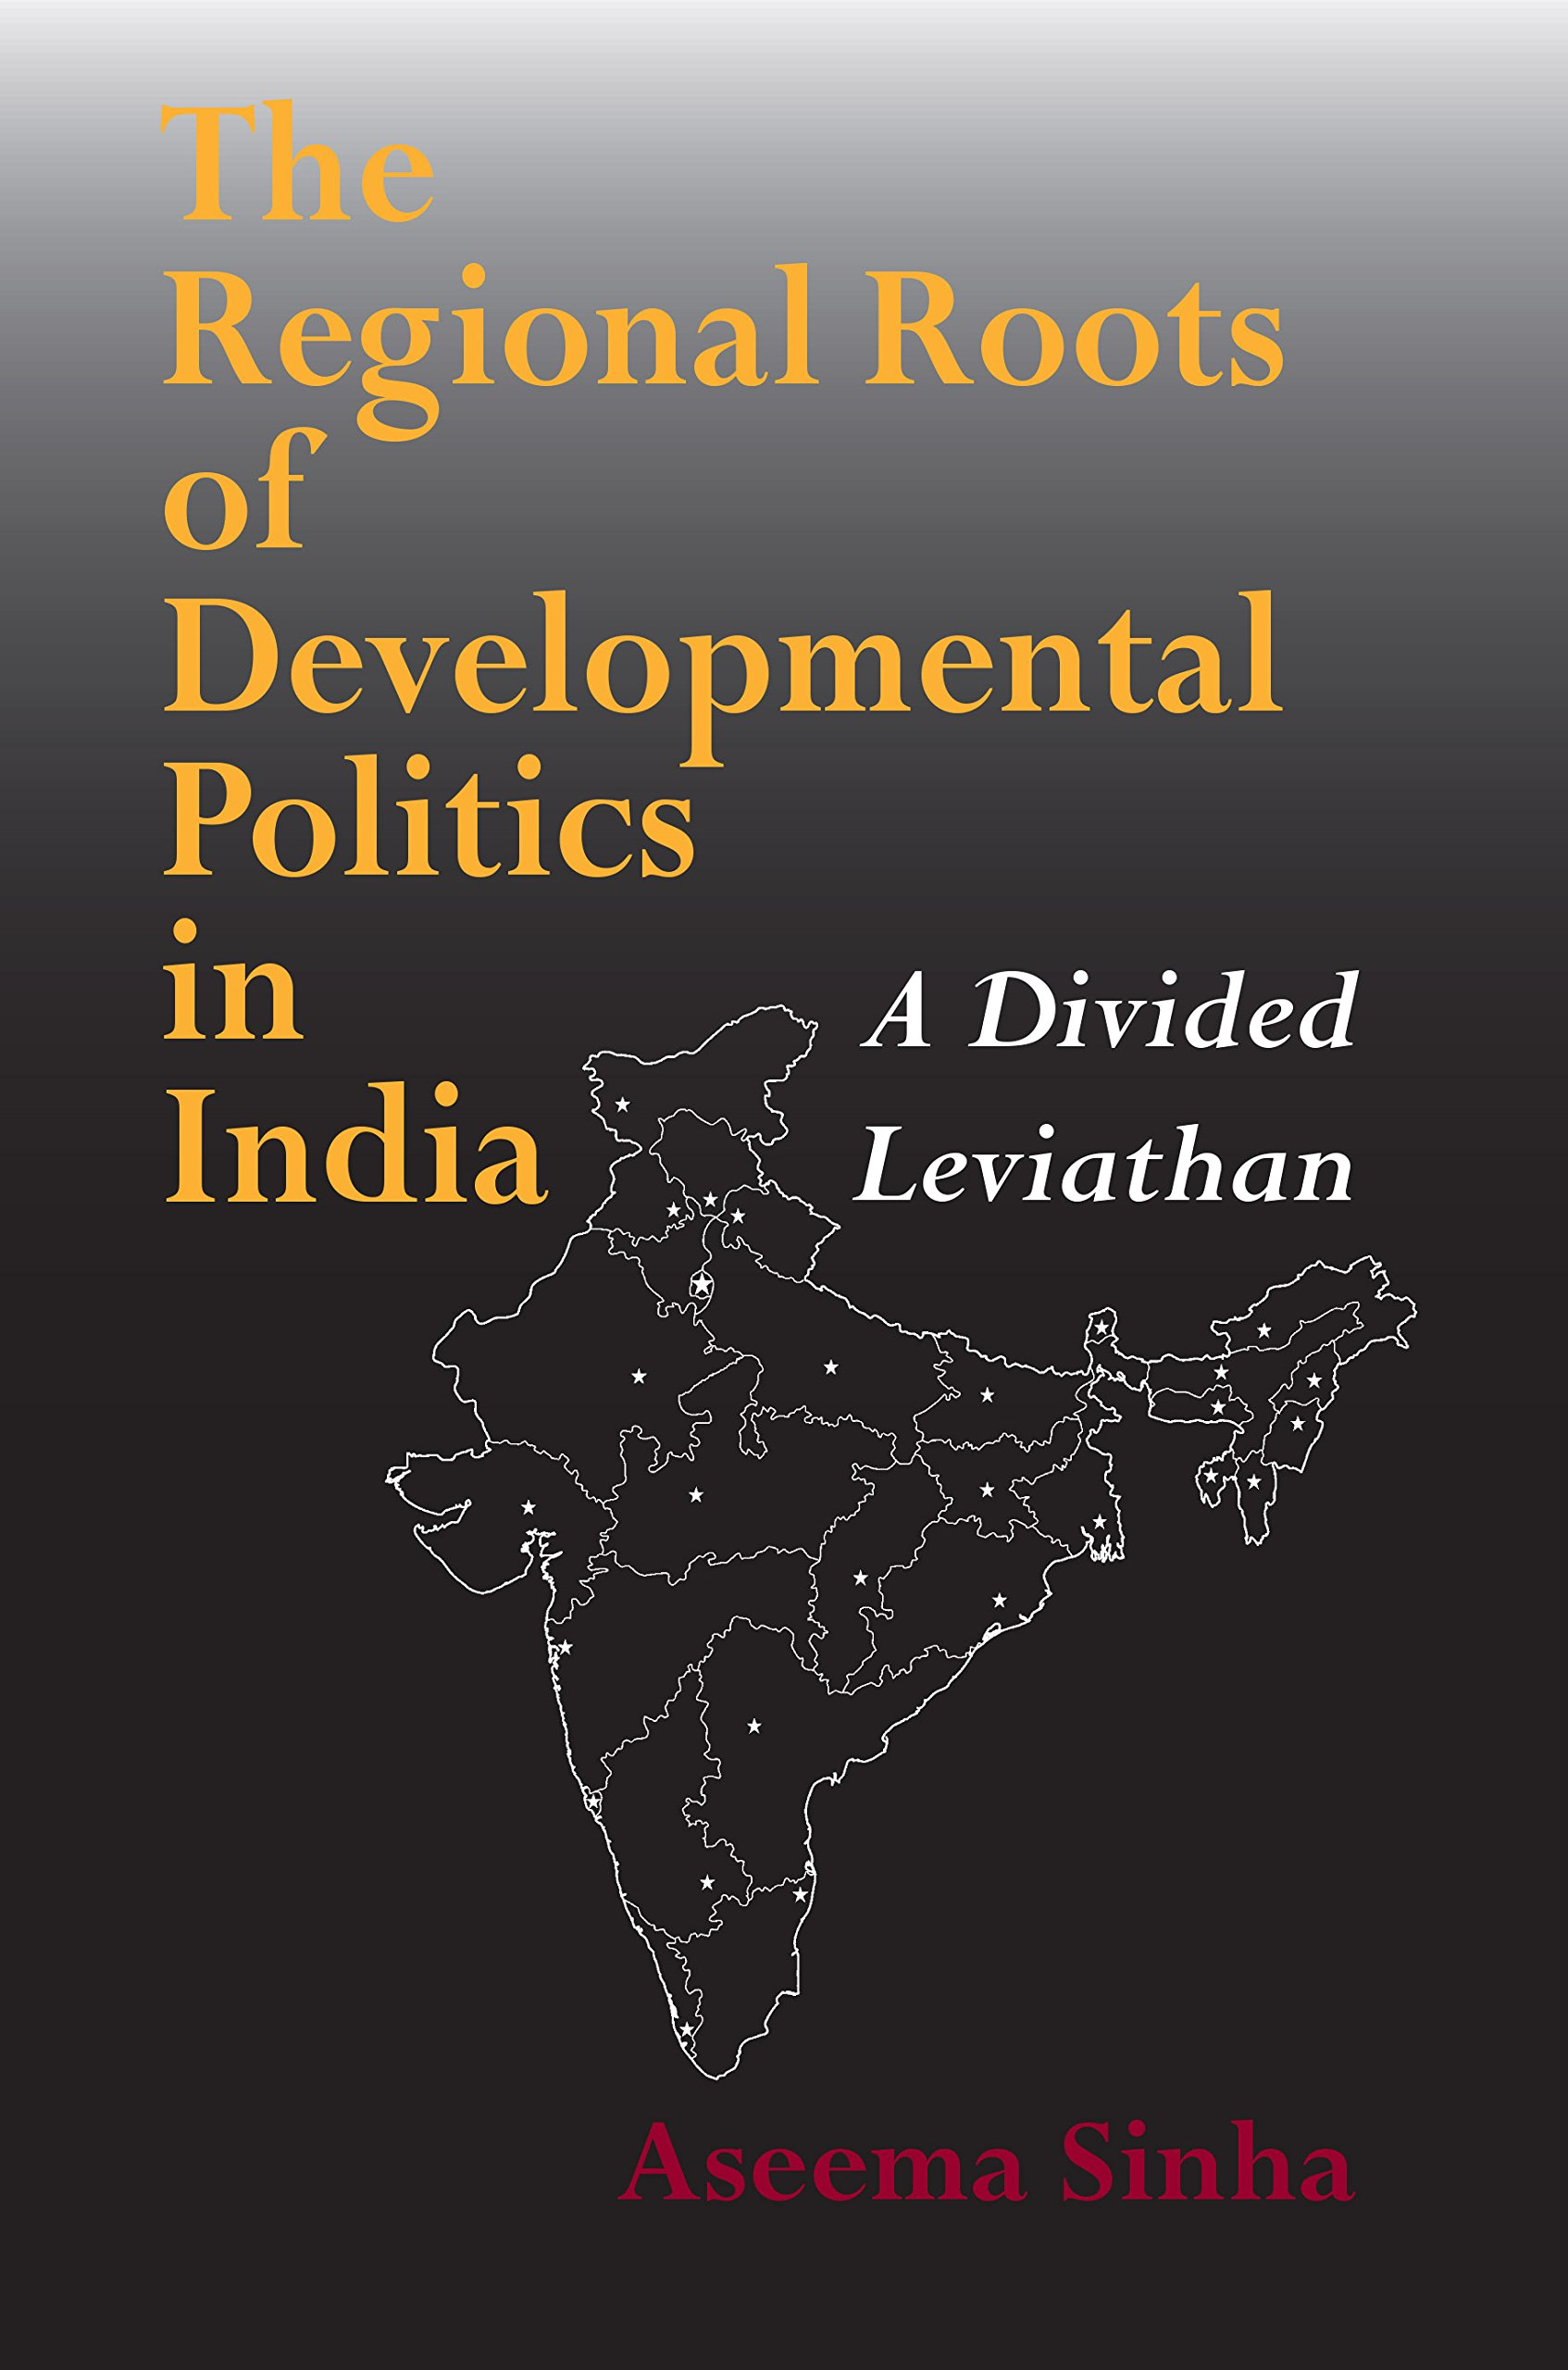 The Regional Roots of Developmental Politics in India: A Divided Leviathan (Contemporary Indian Studies) PDF